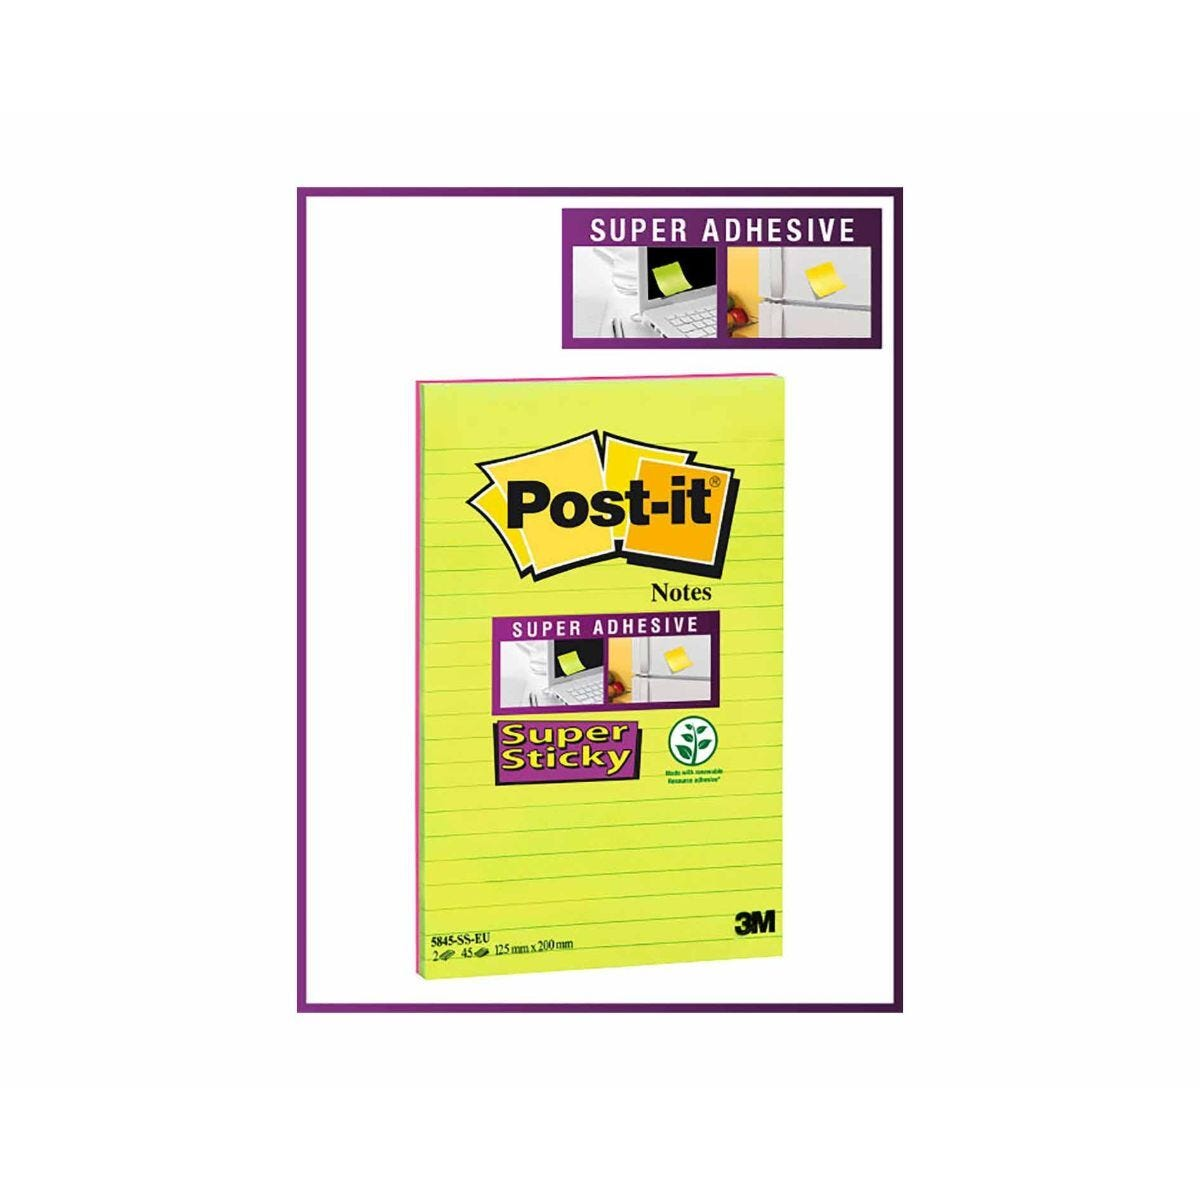 Post-it Super Sticky Lined Notes 2 Pads 45 Sheets